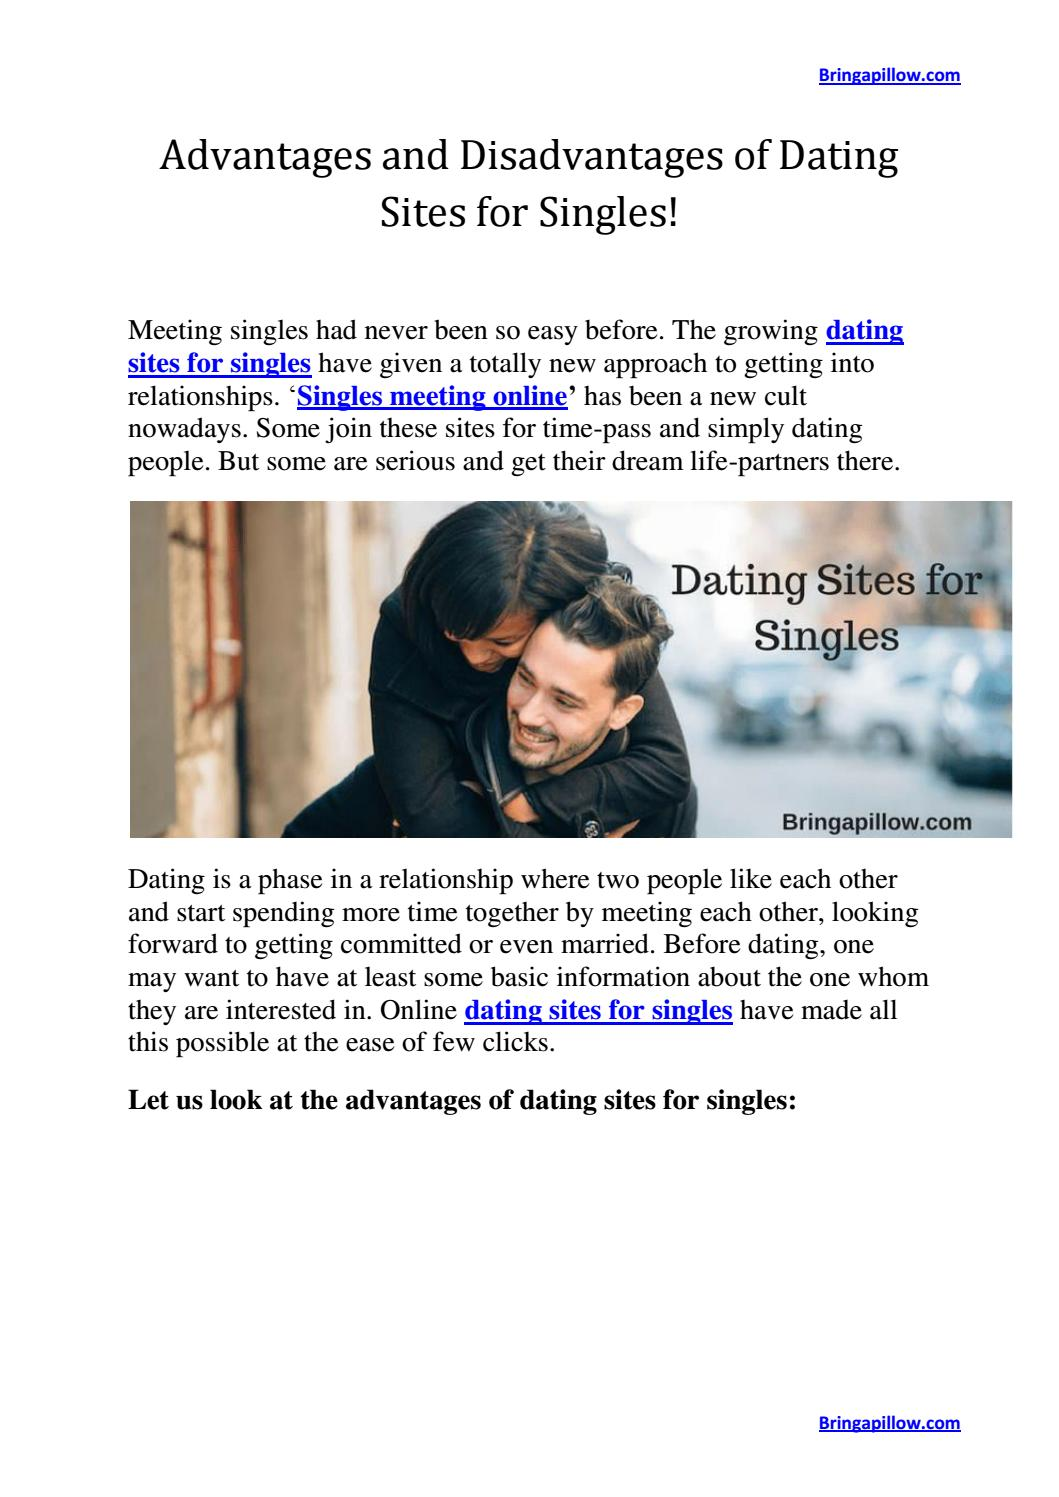 What are the advantages and disadvantages of online dating